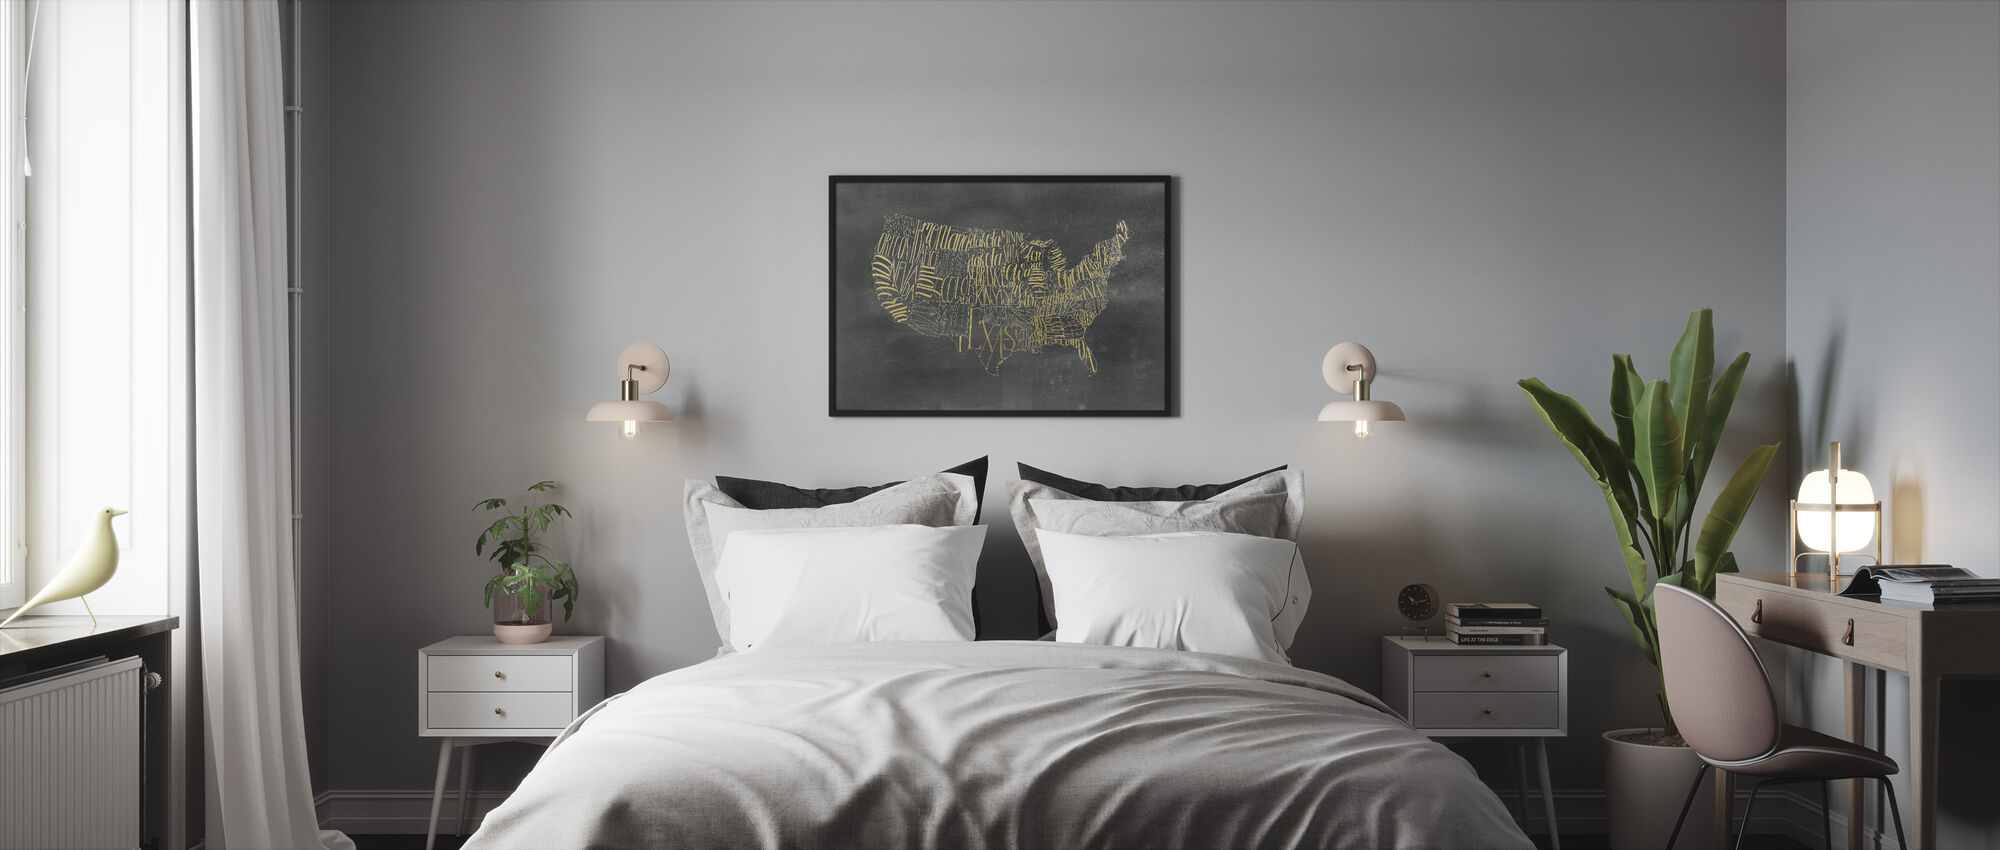 USA Map on Black Wash - Framed print - Bedroom